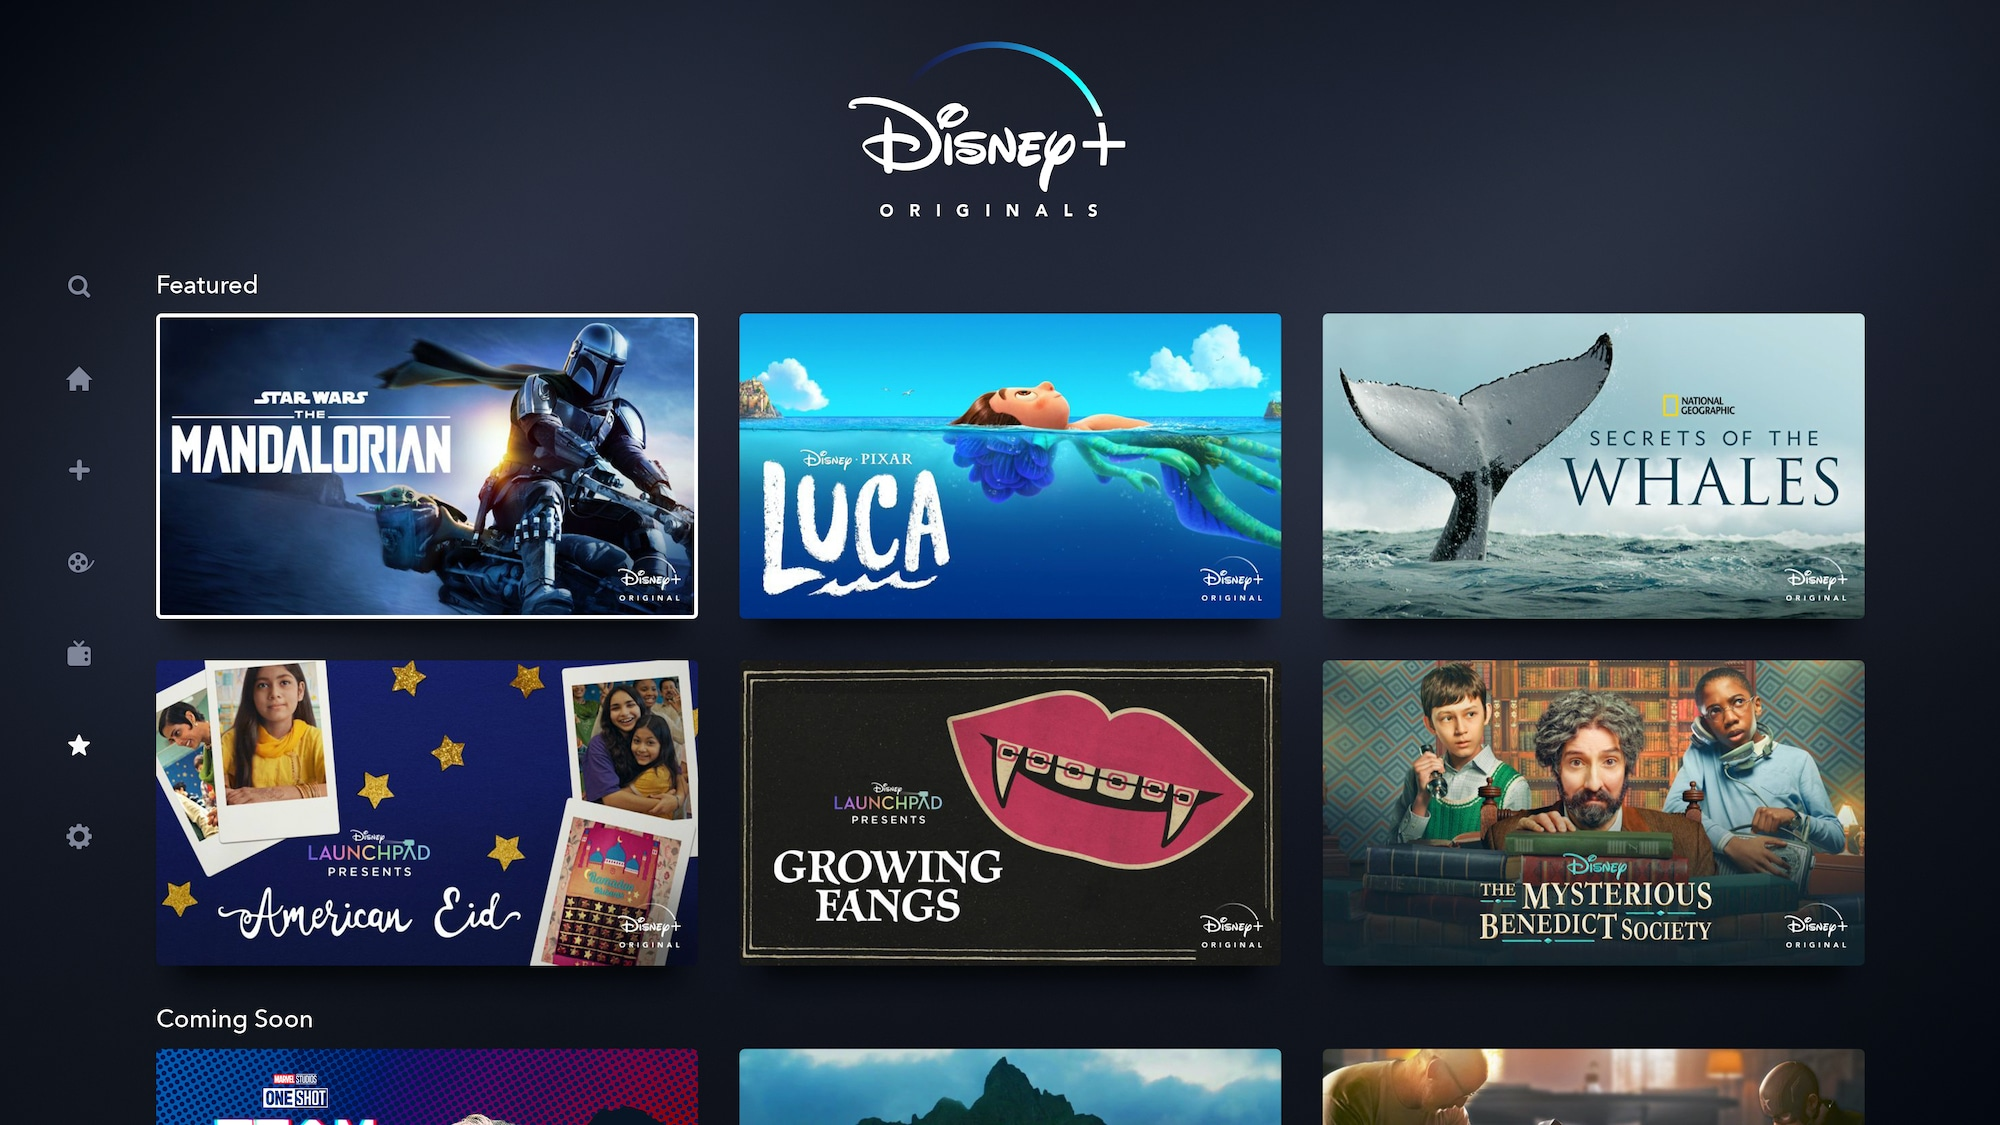 Disney+ Originals Page on Connected TV